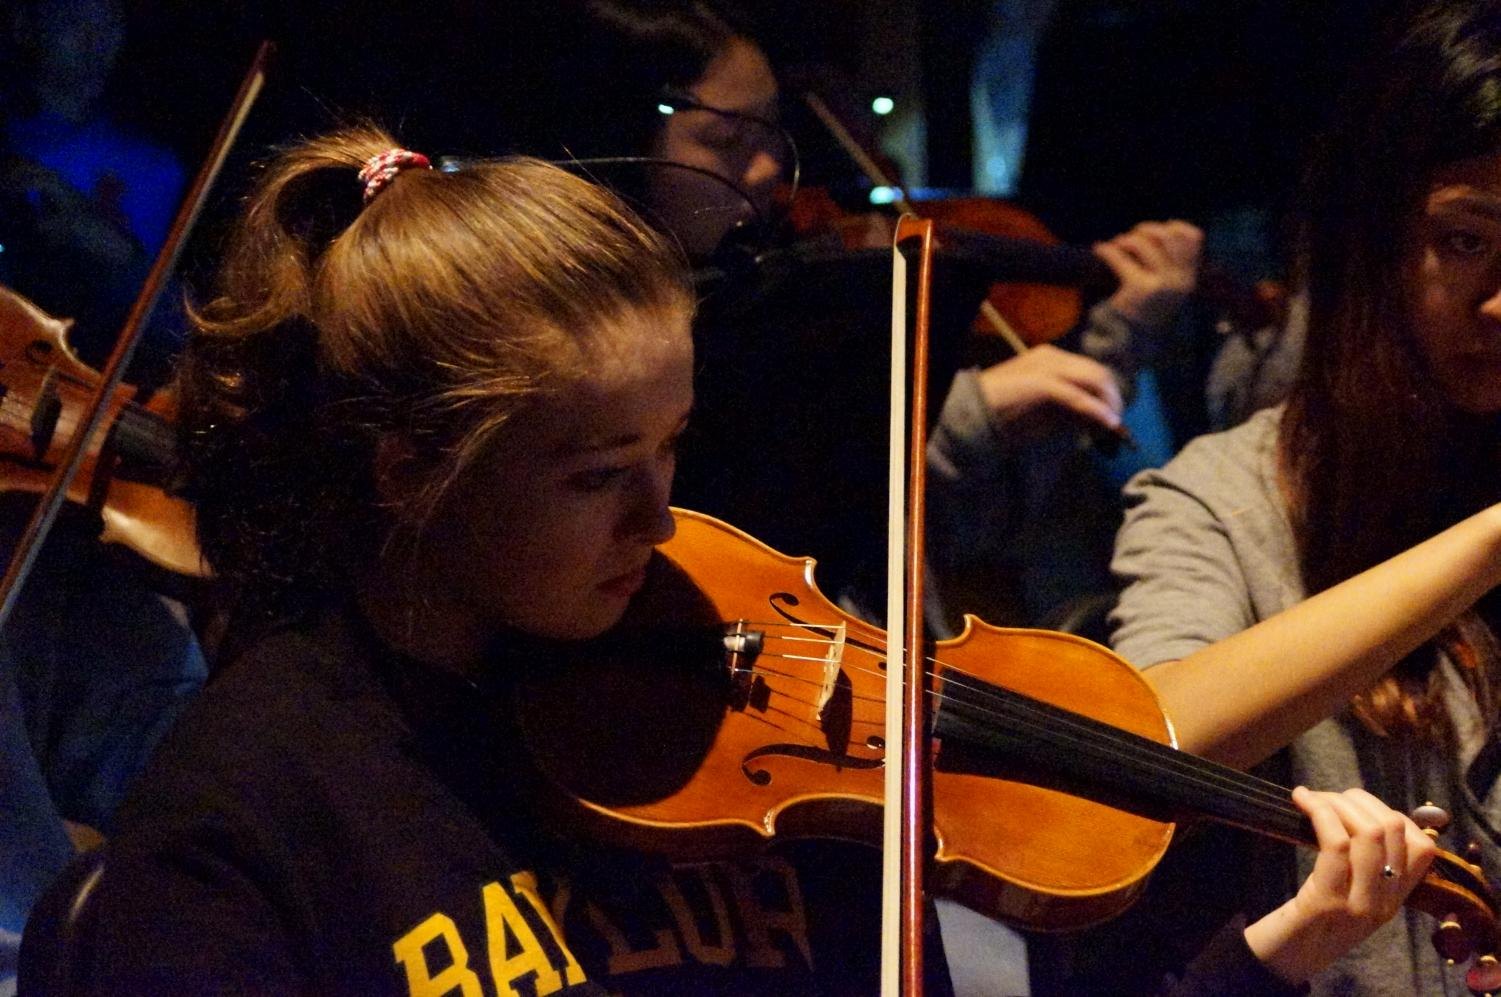 As a senior violinist in the top orchestra, Caroline Attomore had the opportunity to play in the pit at Matilda. The show will have live orchestral music to accompany each song.